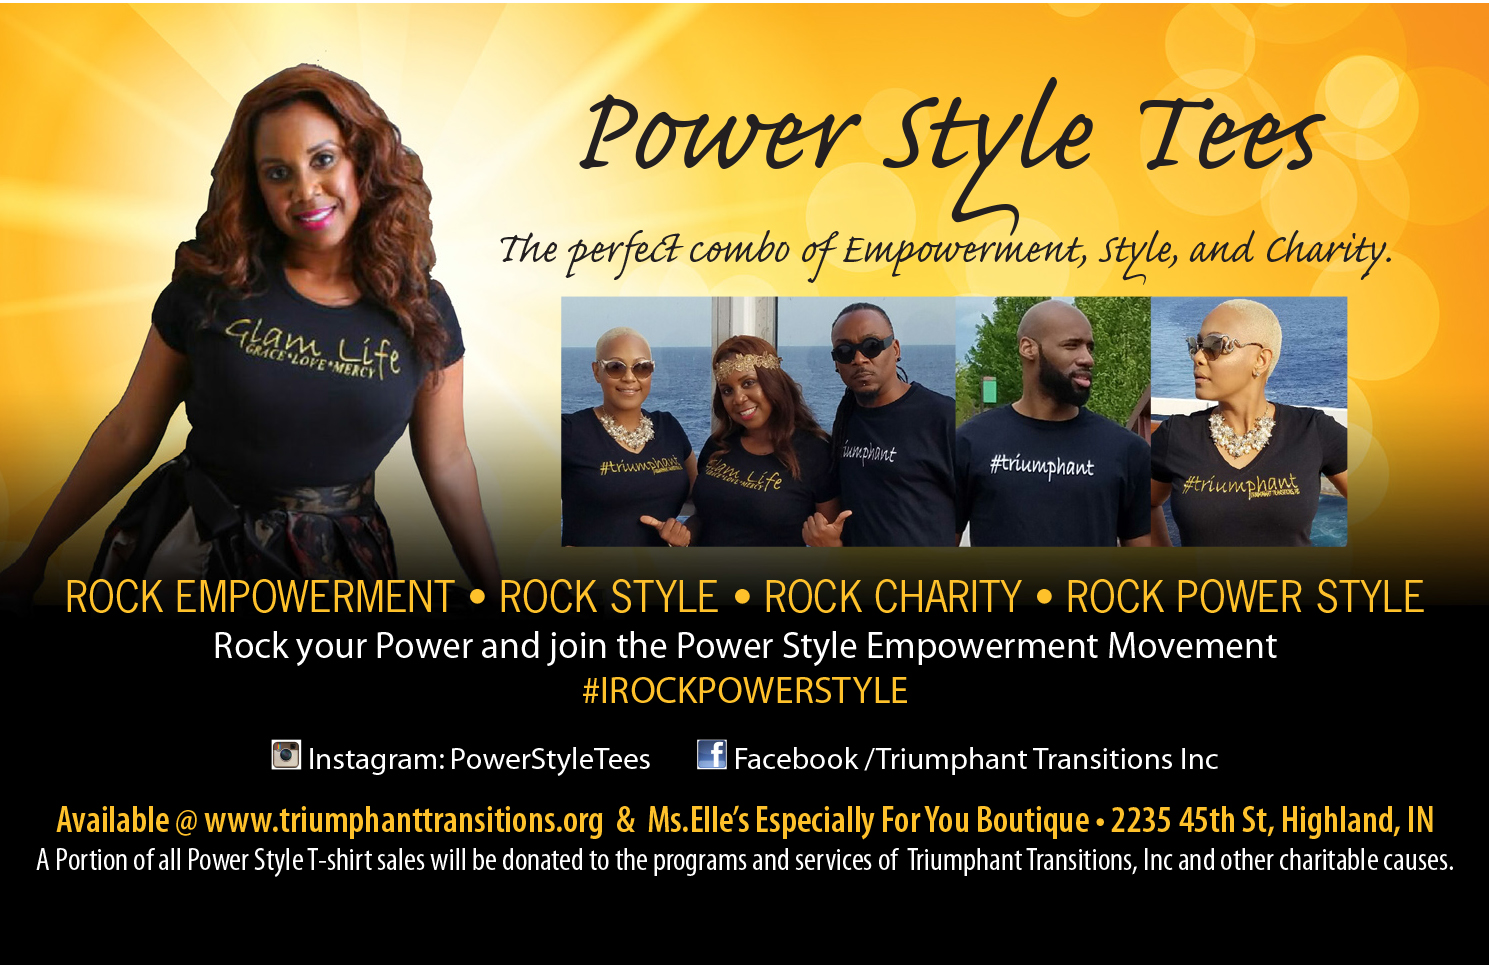 Power Style Tees